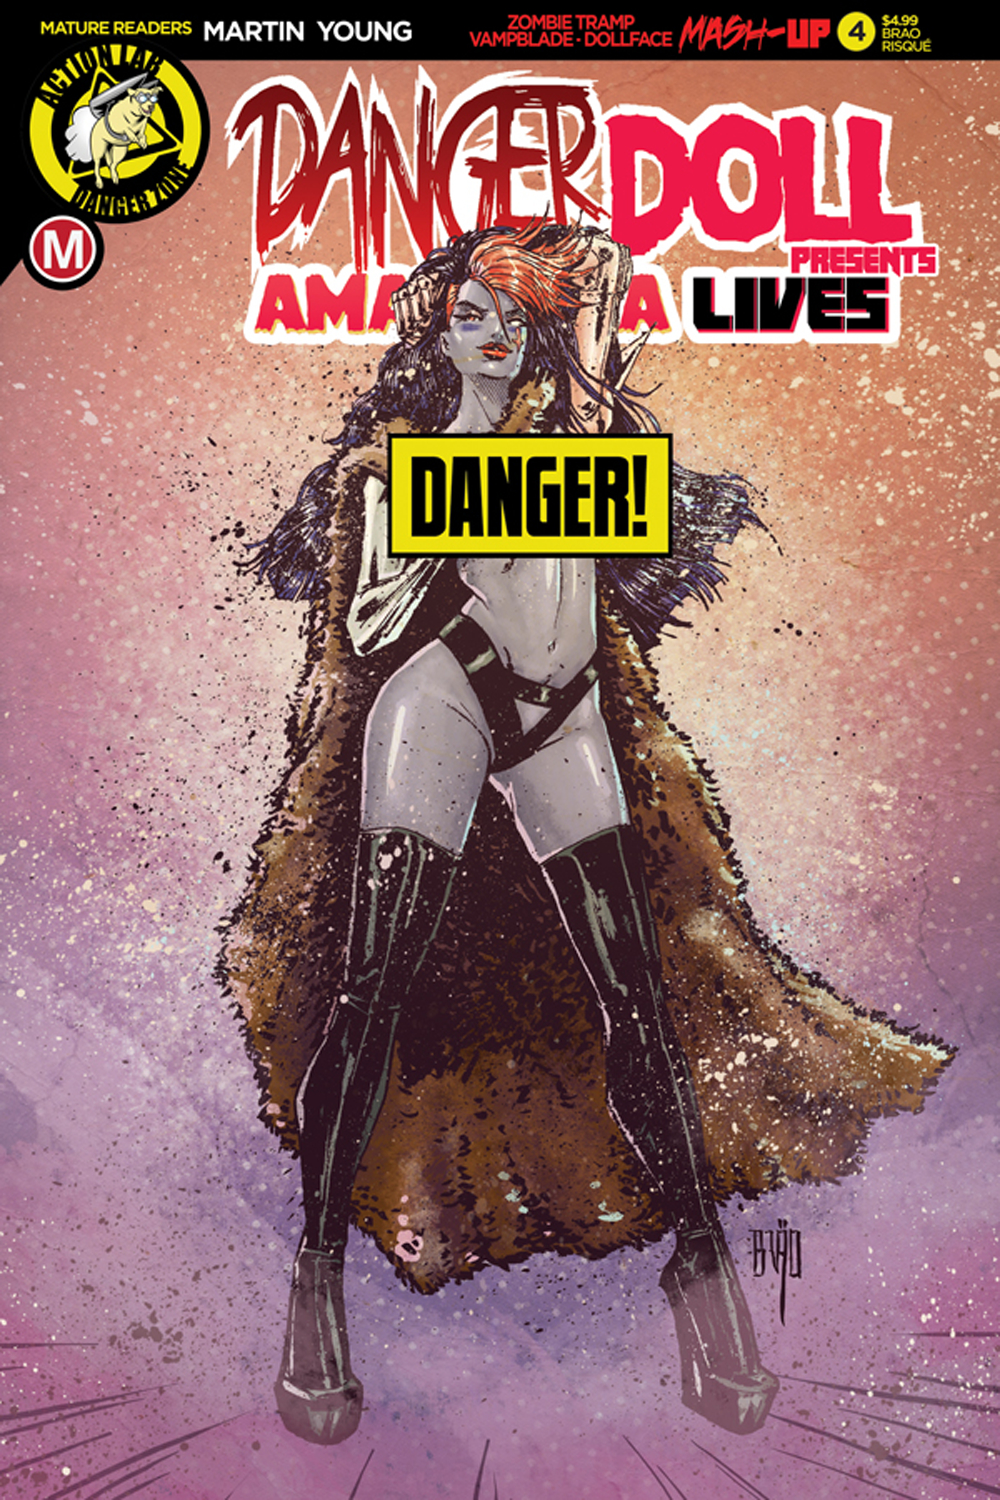 DANGER DOLL SQUAD PRESENTS AMALGAMA LIVES #4 CVR F ACTION FI